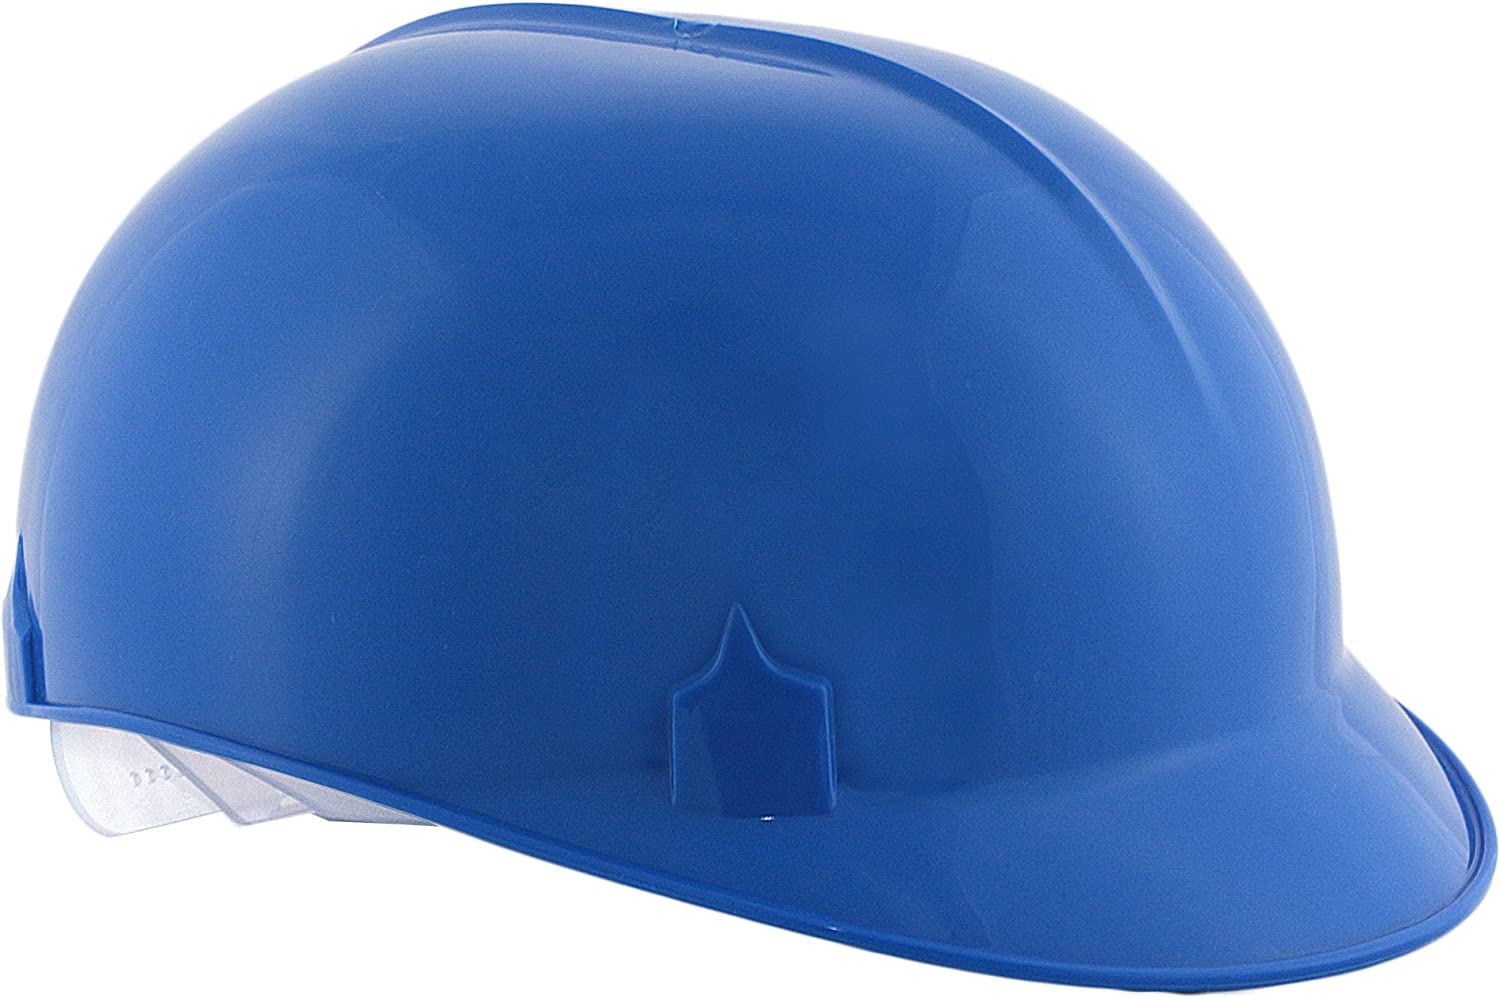 Vented U.S.A. Red 988-VR Vented and Non-Vented Bump Caps Unique Safety Alternatives One Size